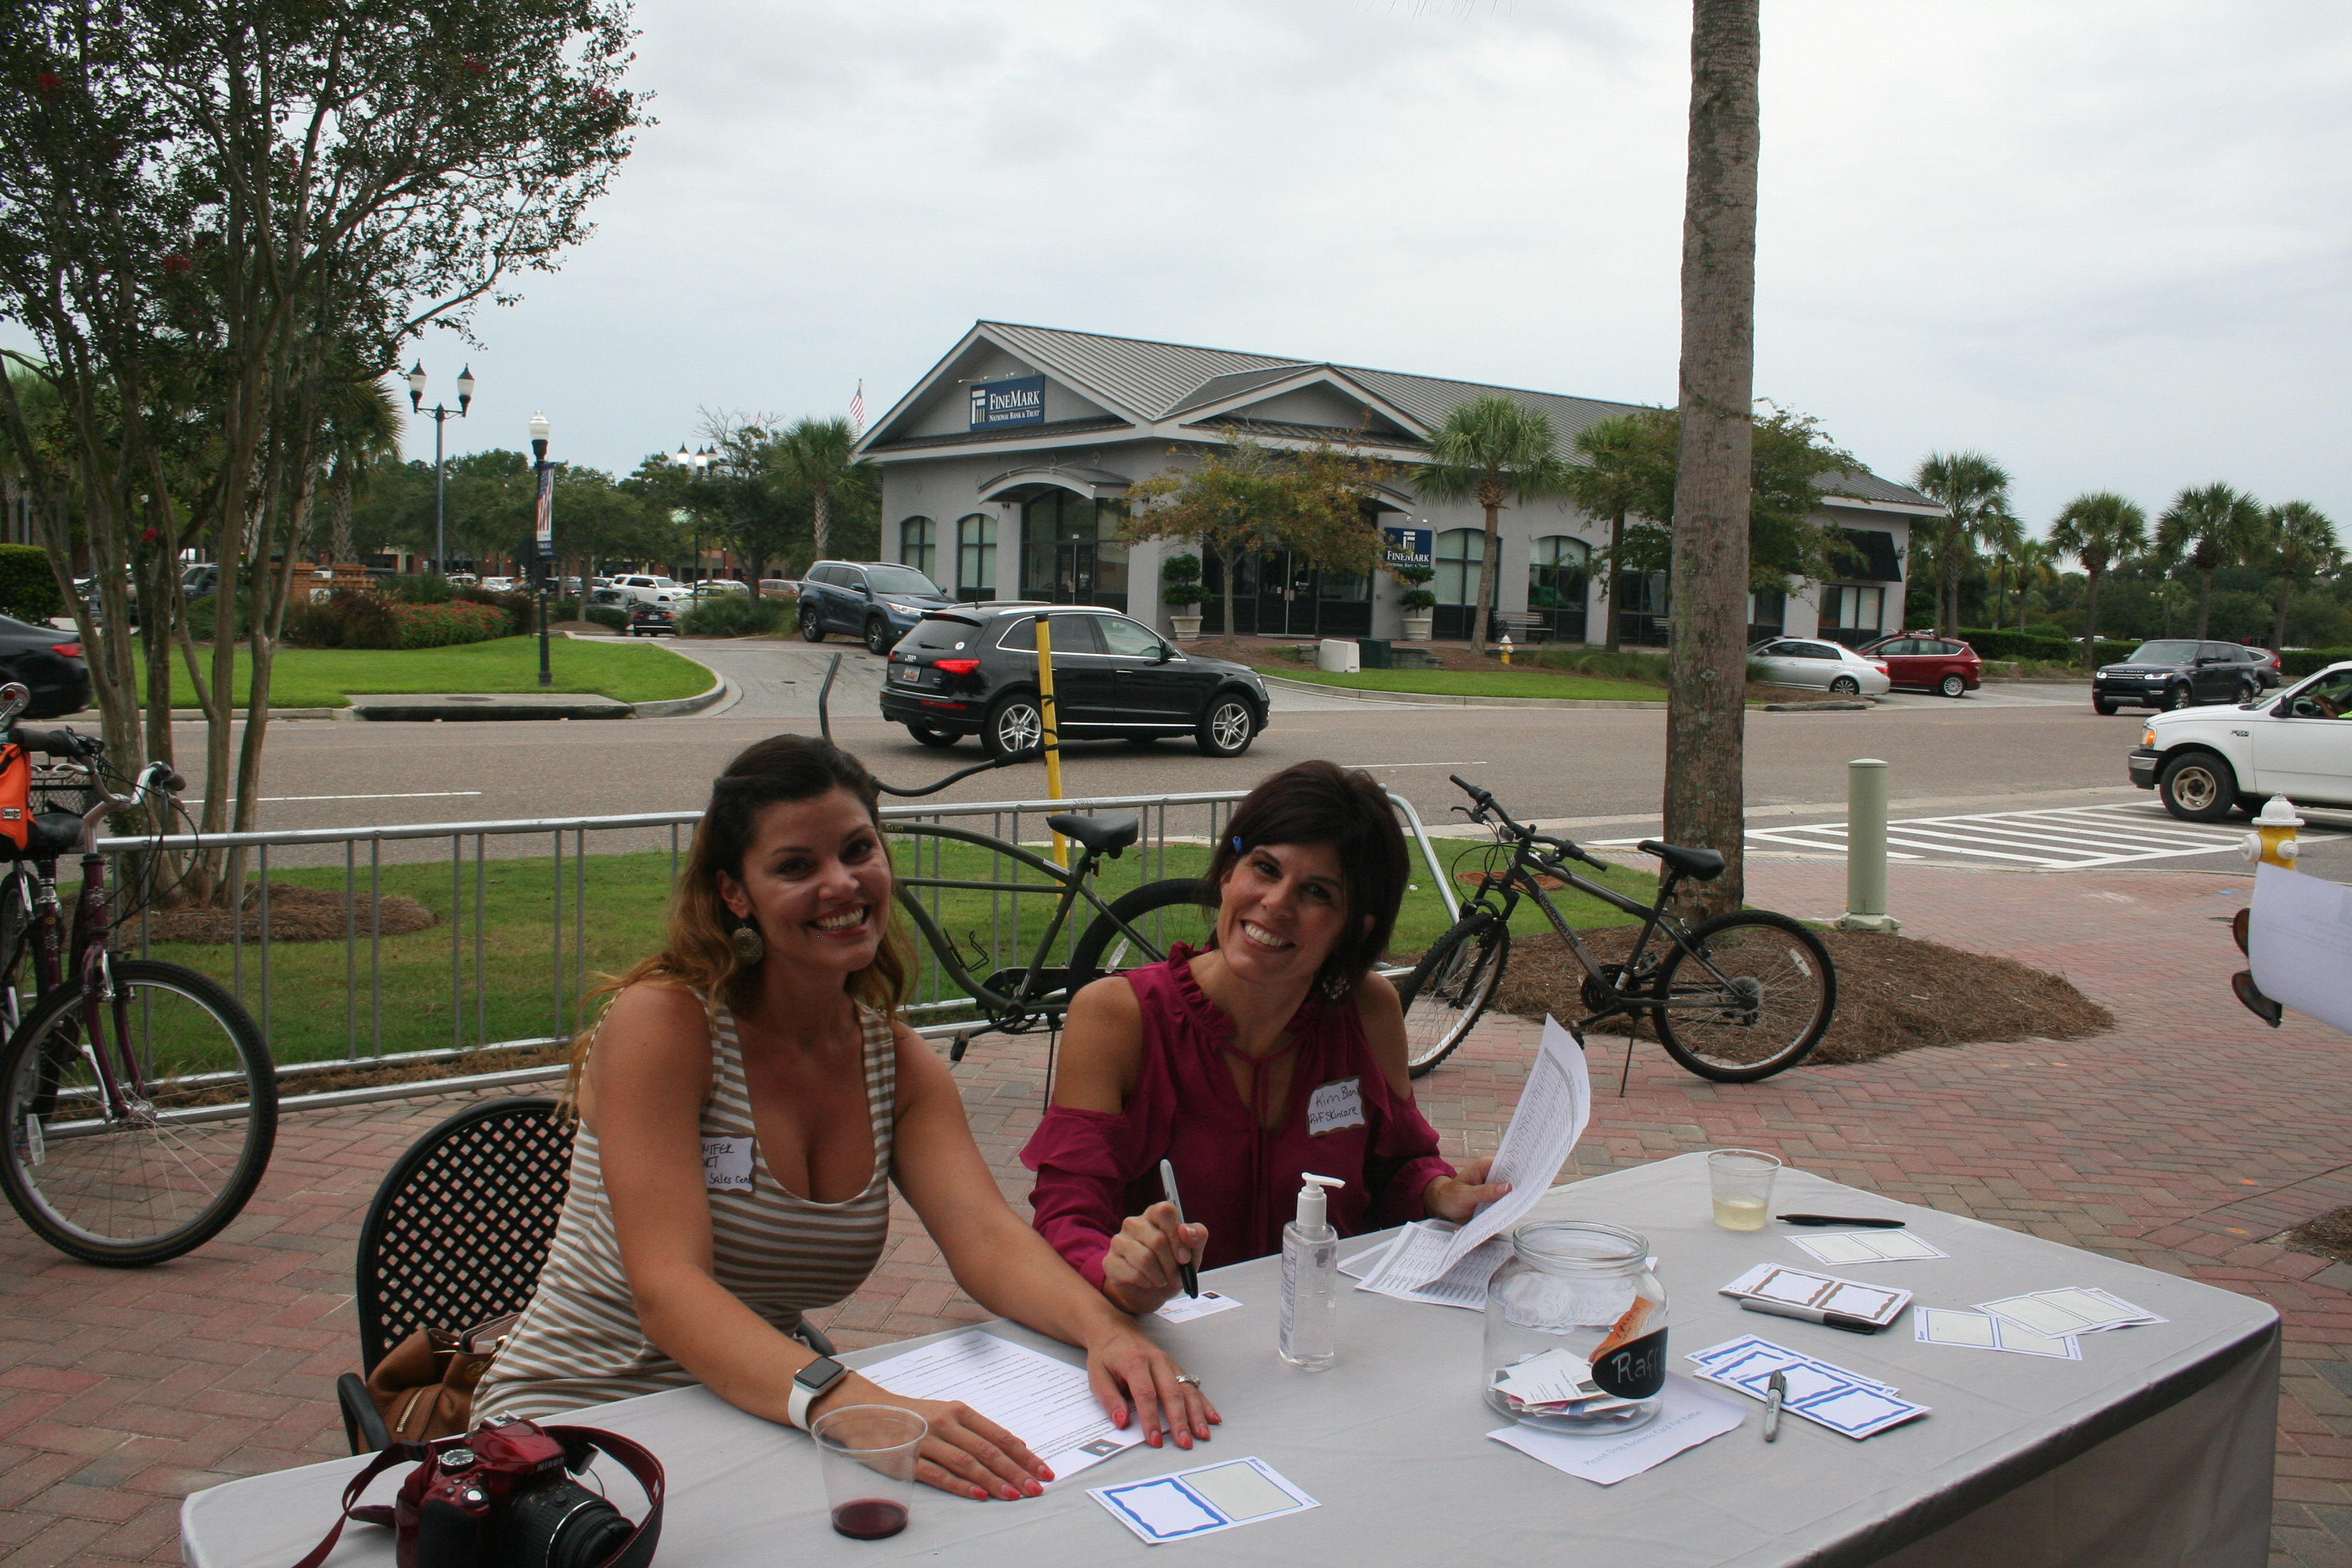 All smiles! Jennifer Fort and Kim Blank man the membership and sign in booth.